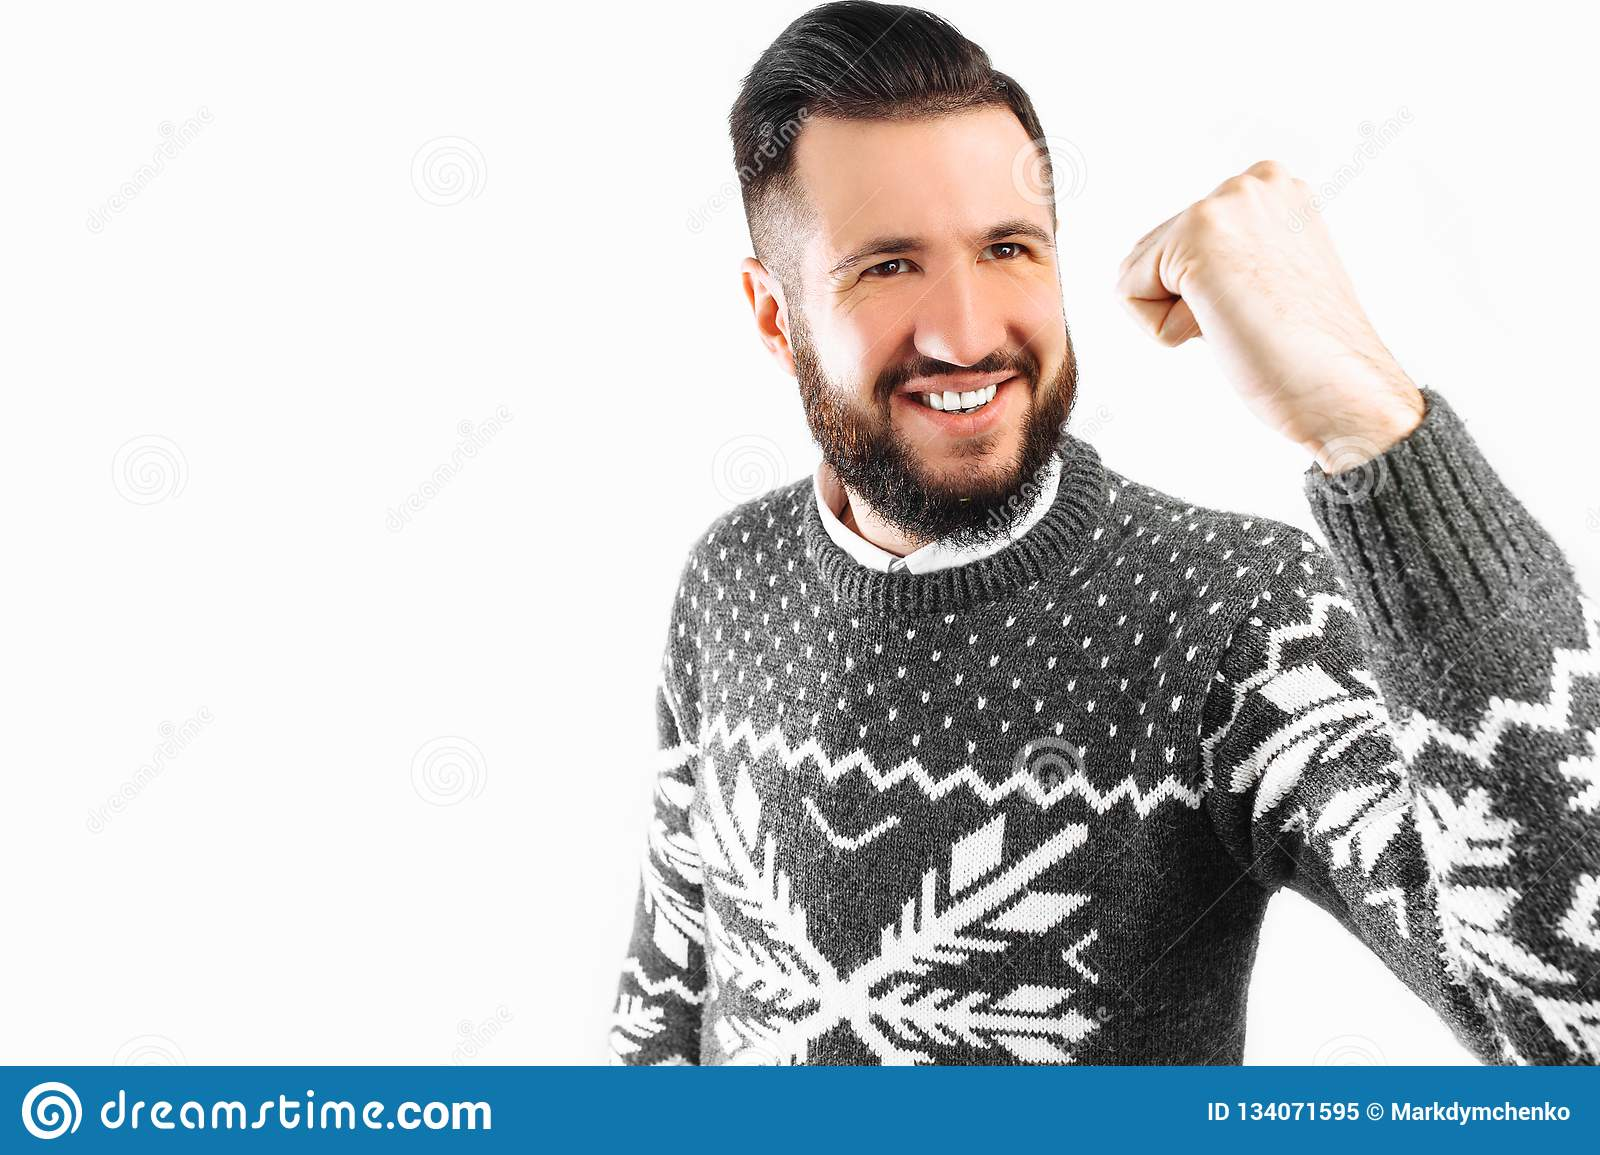 Happy man with a beard, a man depicts a gesture of victory and success